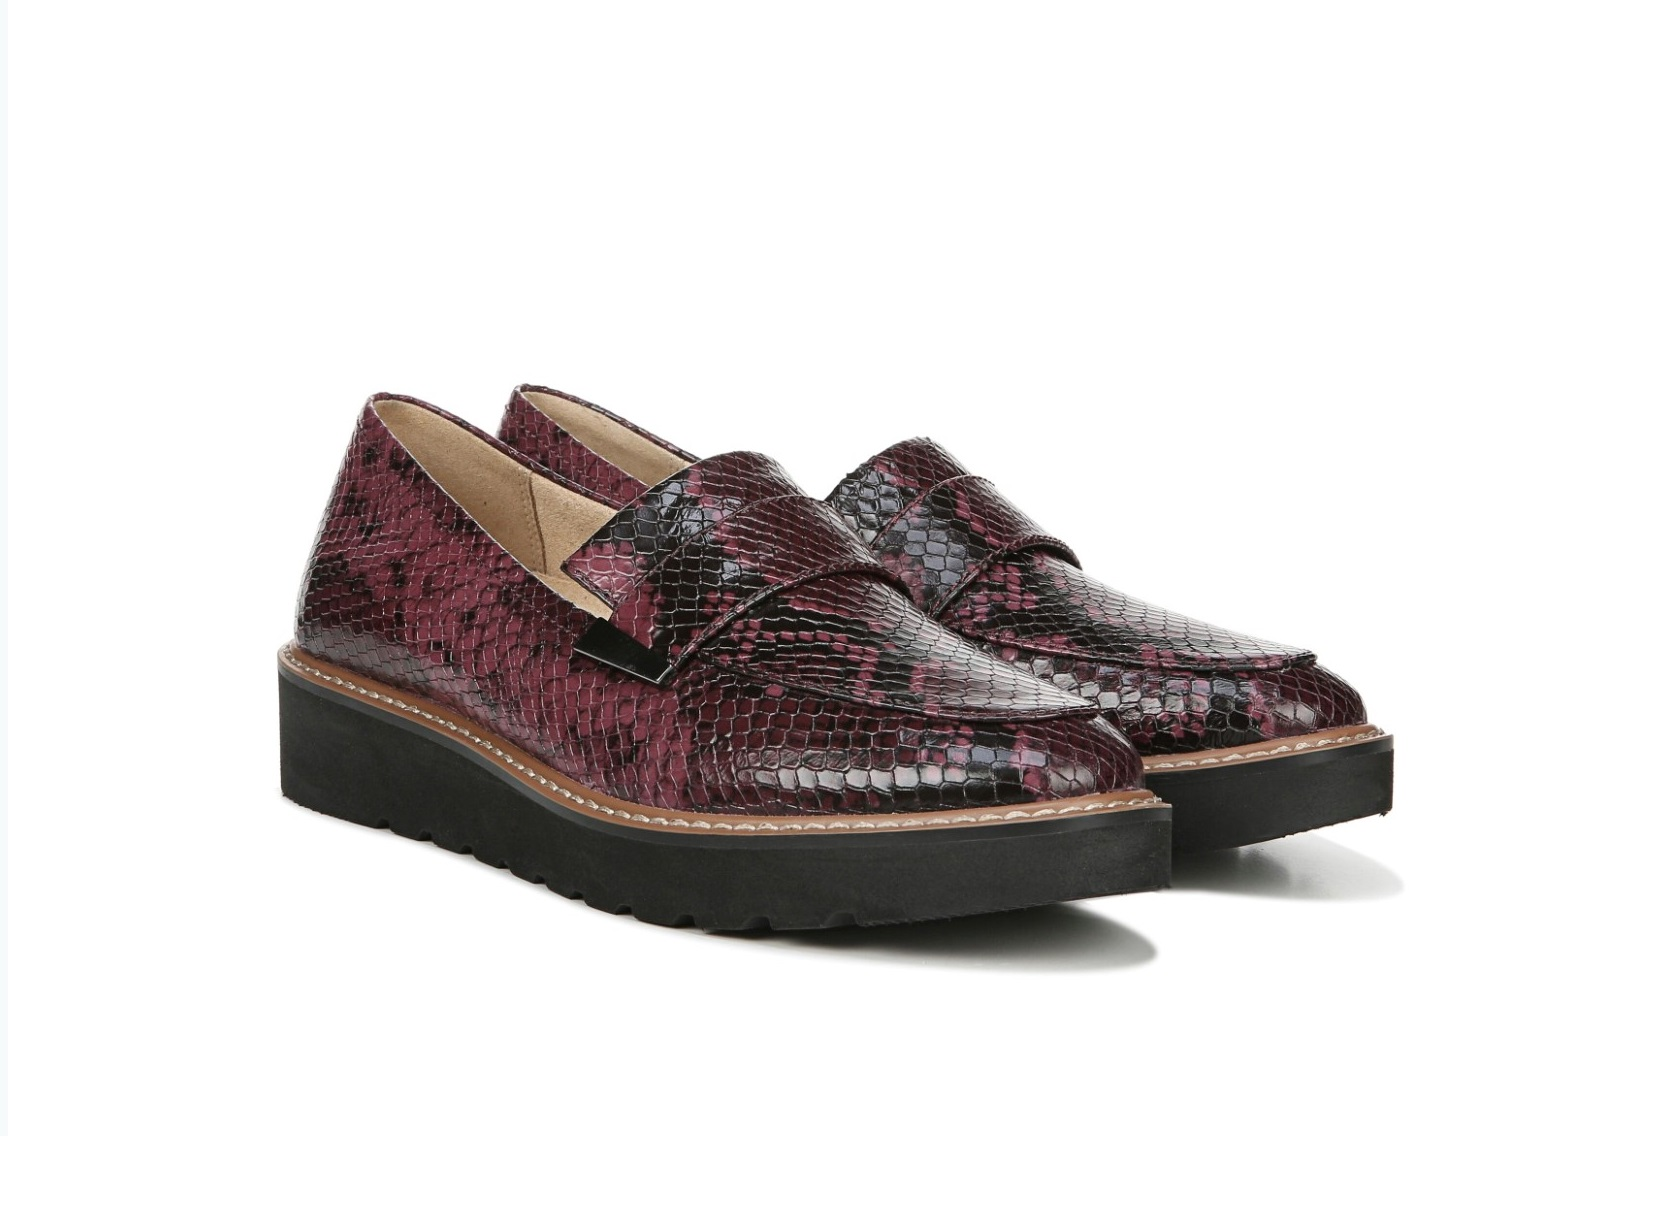 2019 holiday gift guide Naturalizer's New 'Lite Series' Platform Loafer